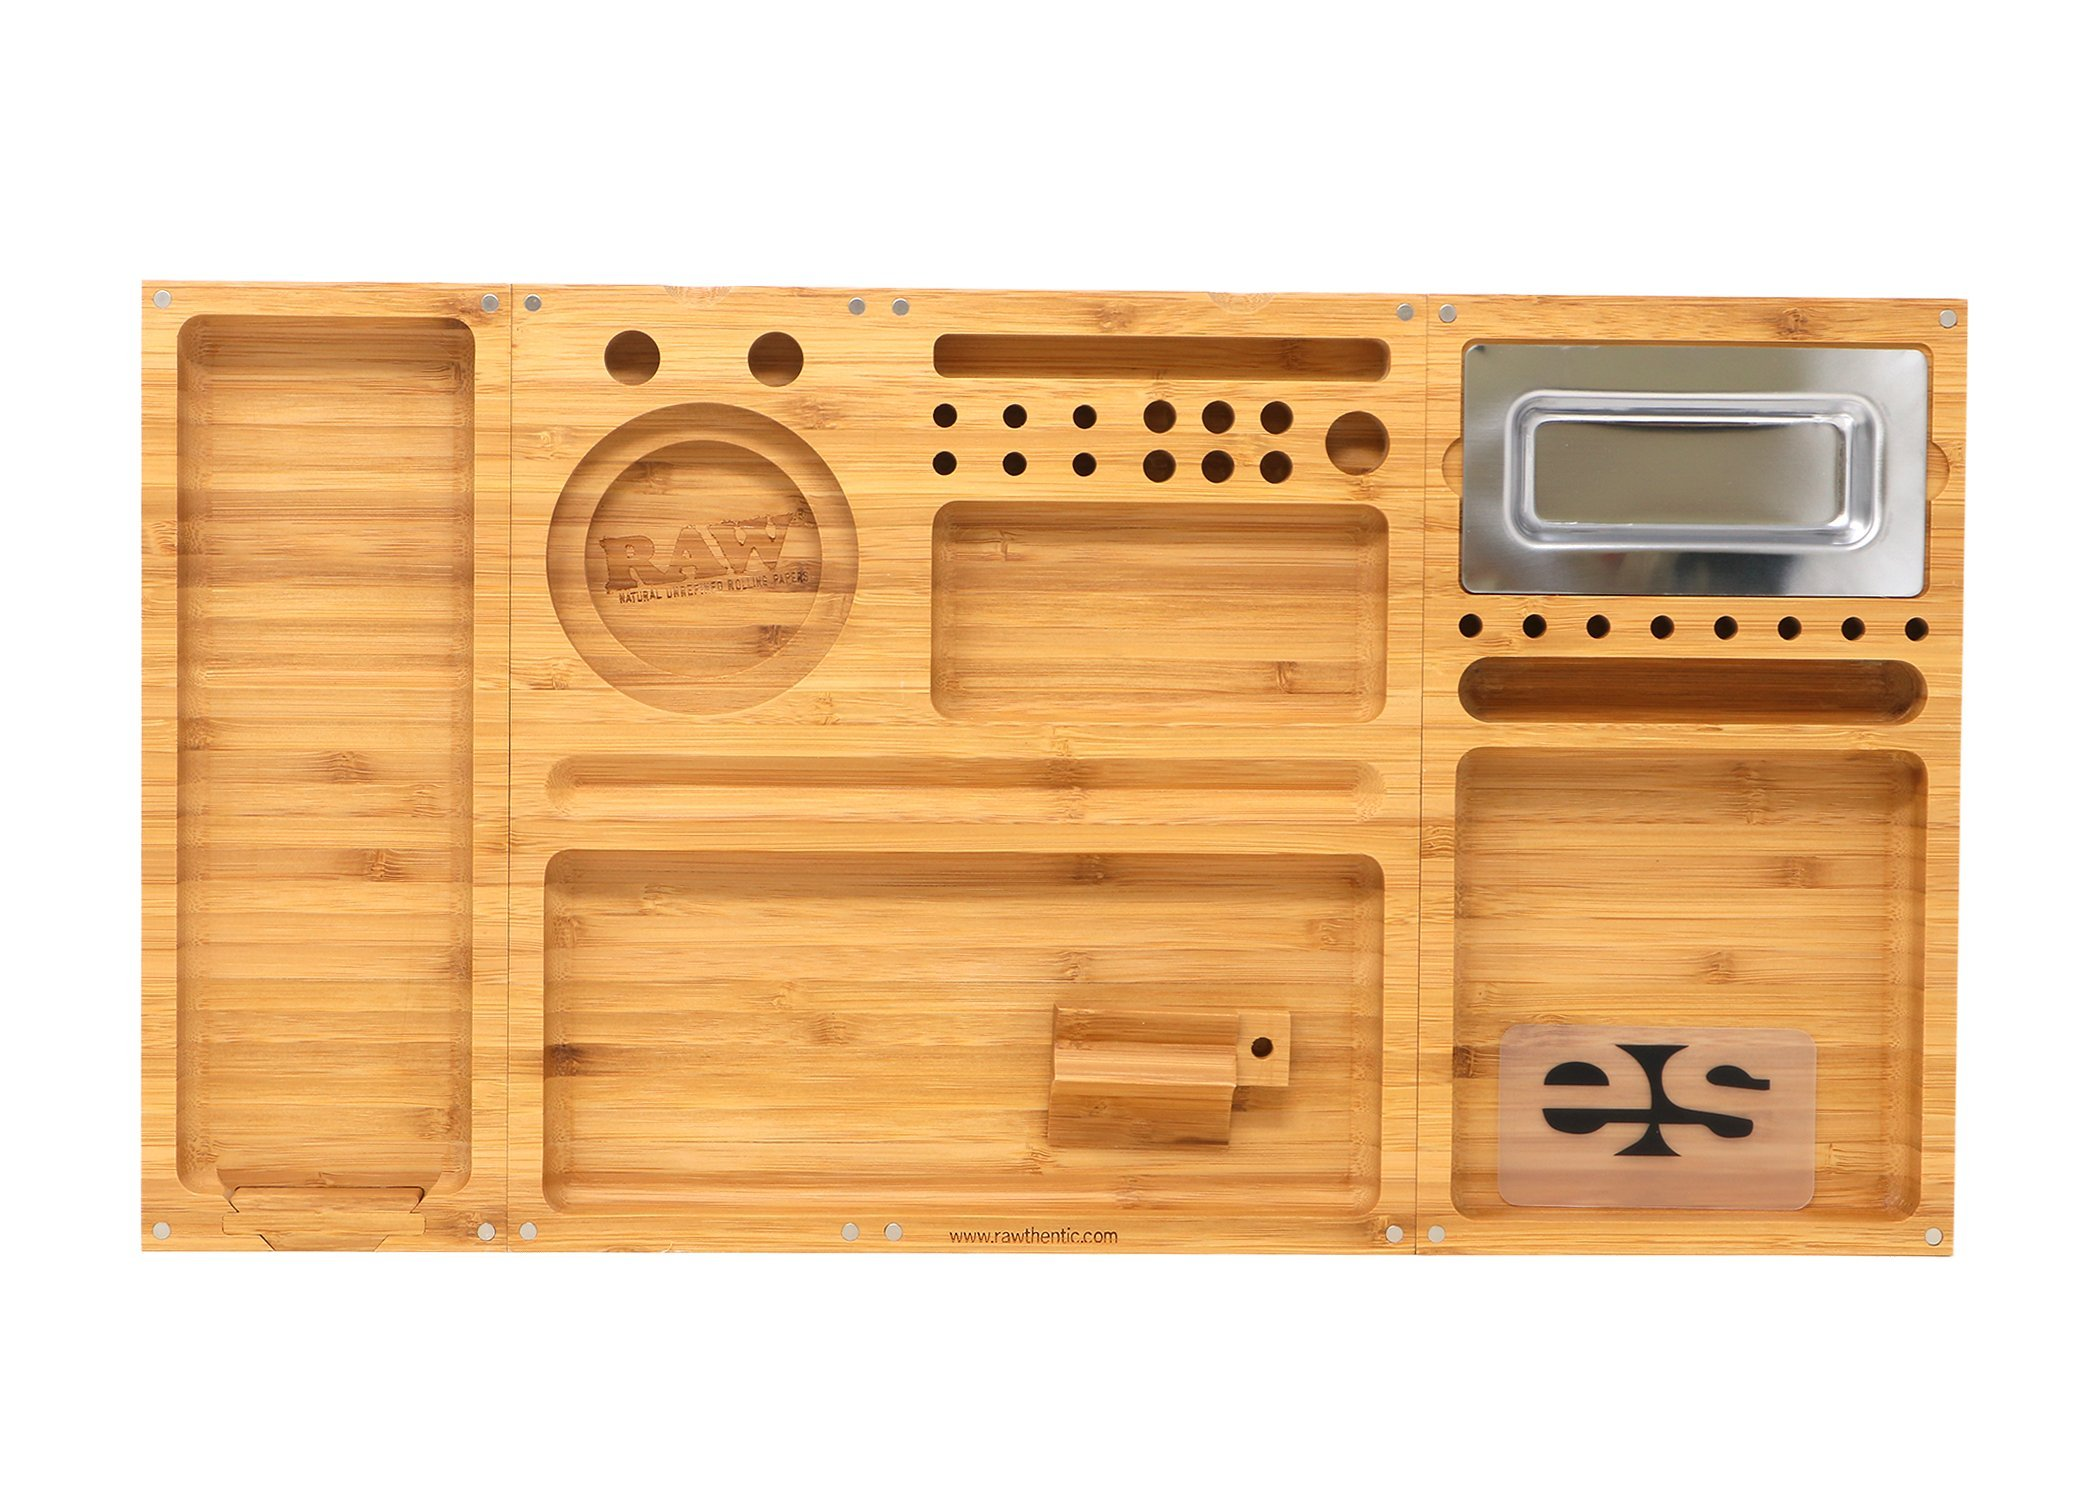 RAW ''Triple Flip'' Bamboo Magnet Rolling Foldable Tray with Built-in Ashtray